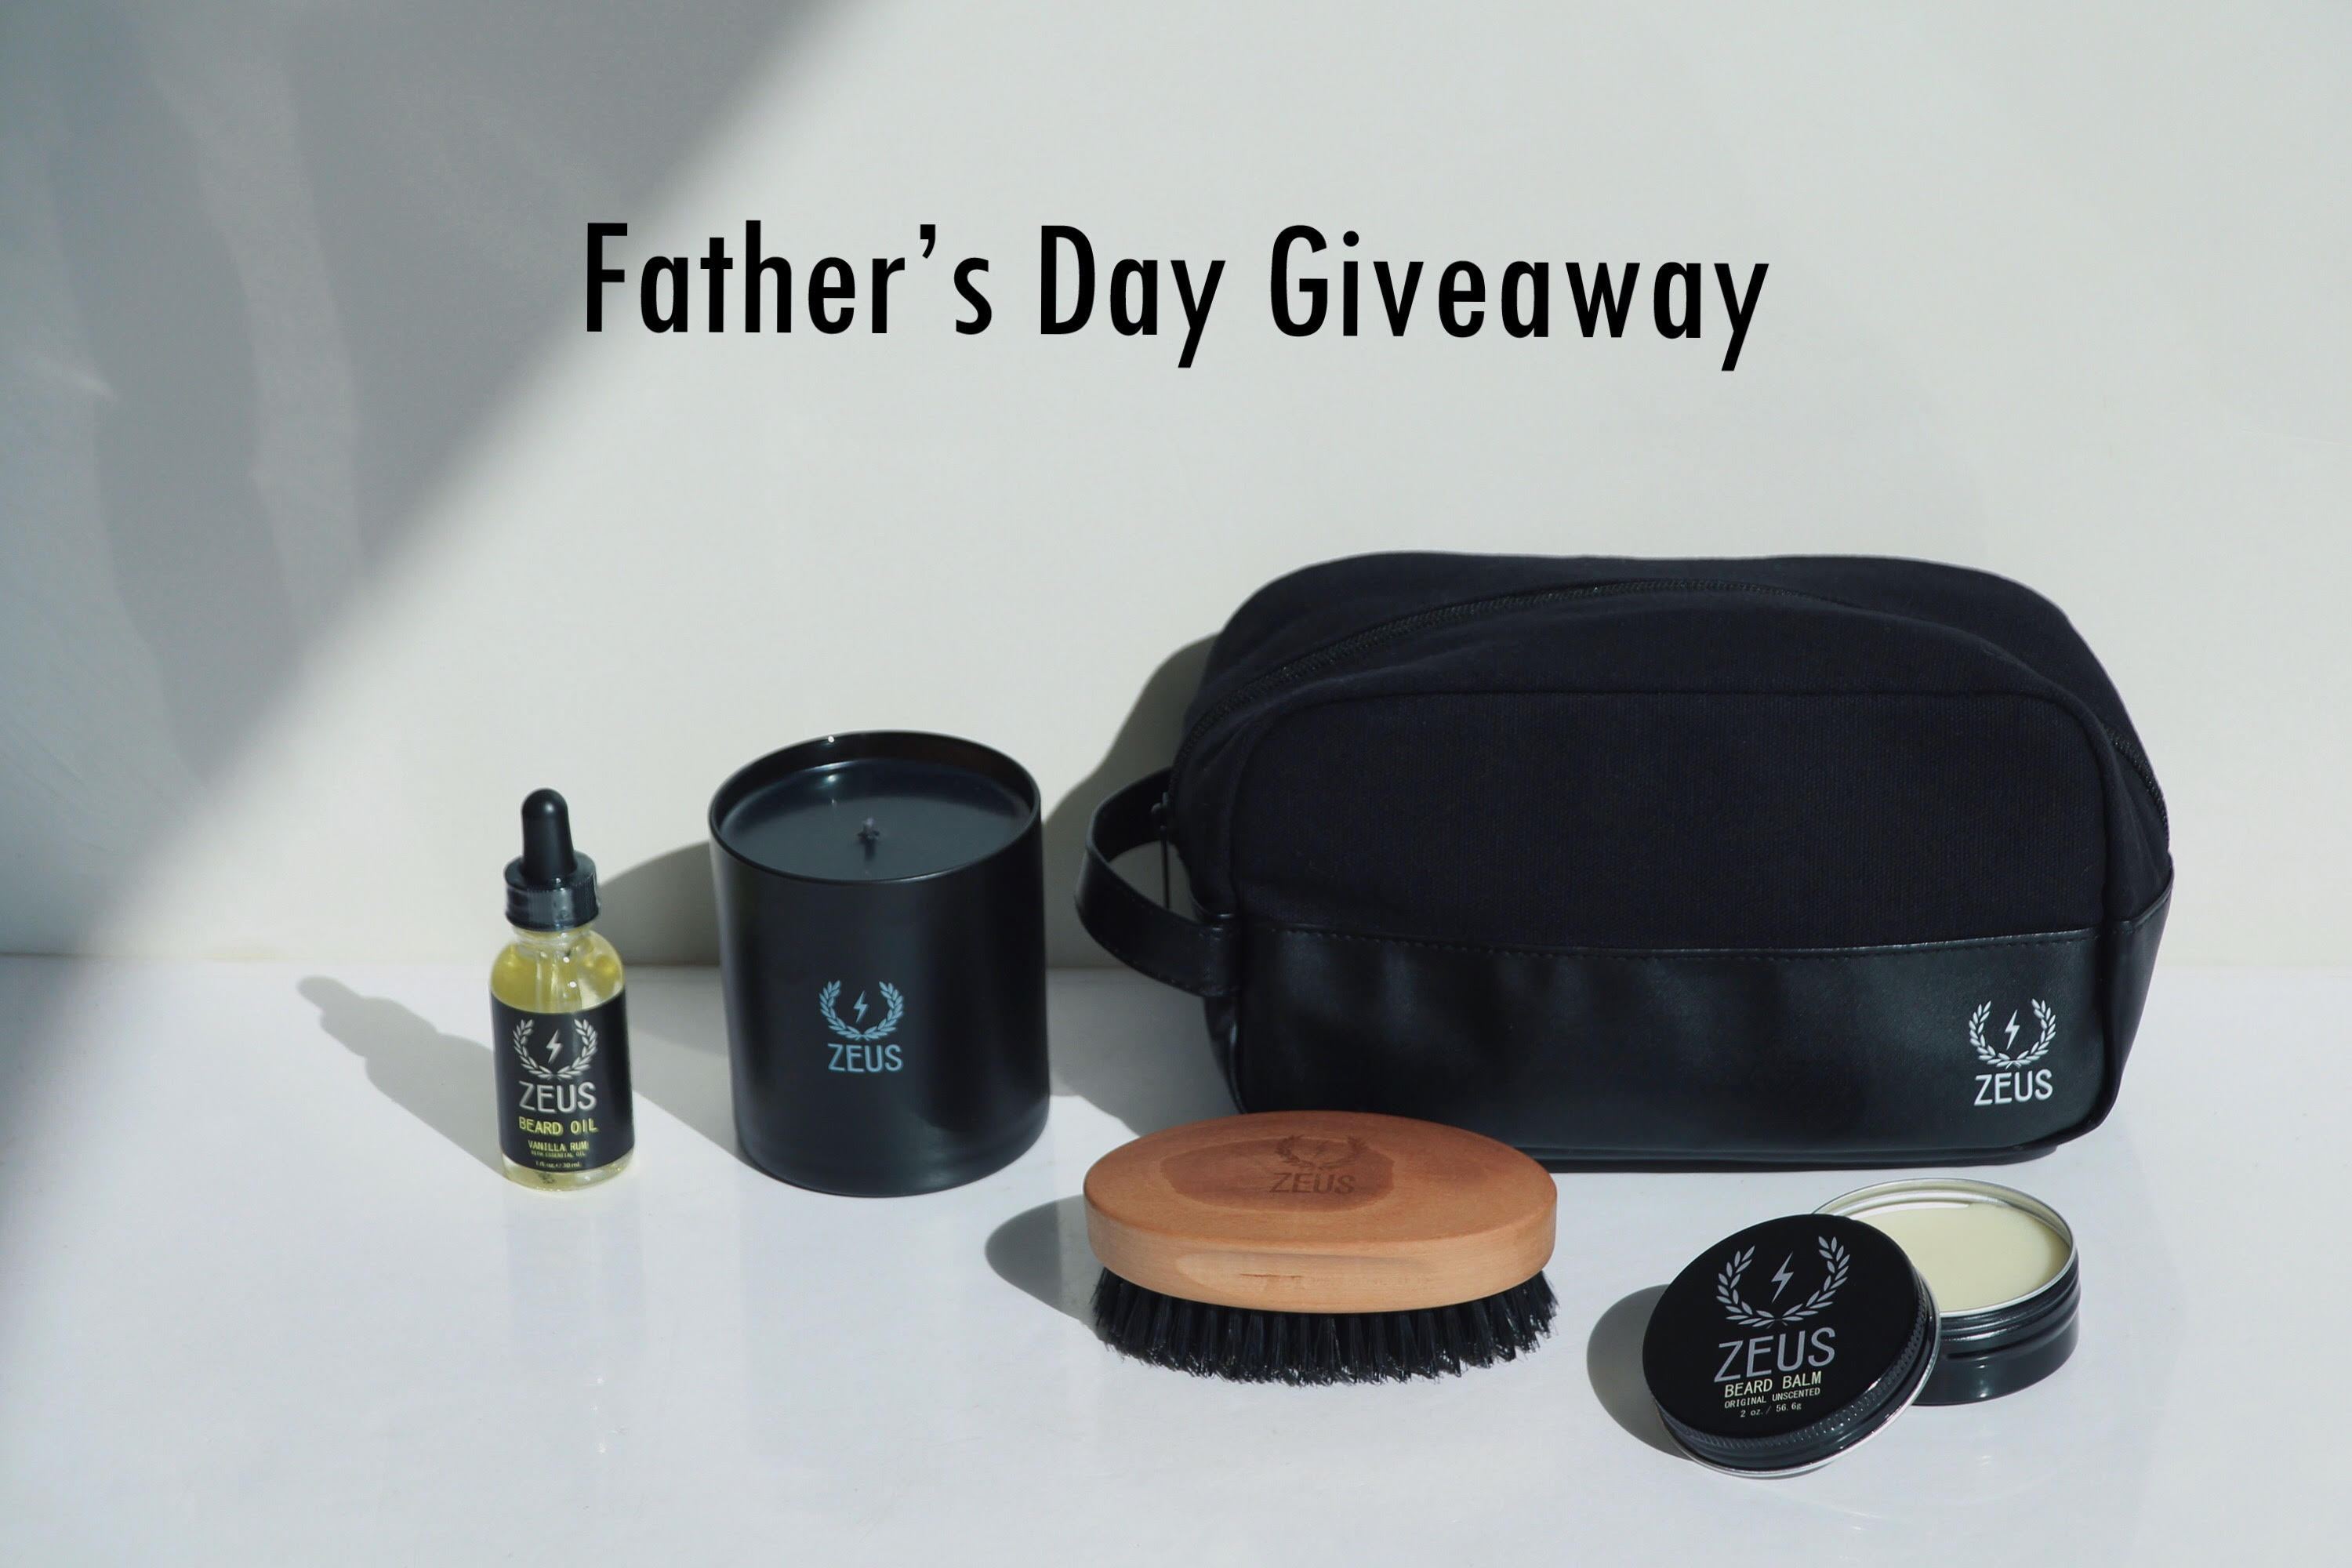 ENTER THE ZEUS FATHER'S DAY GIVEAWAY!